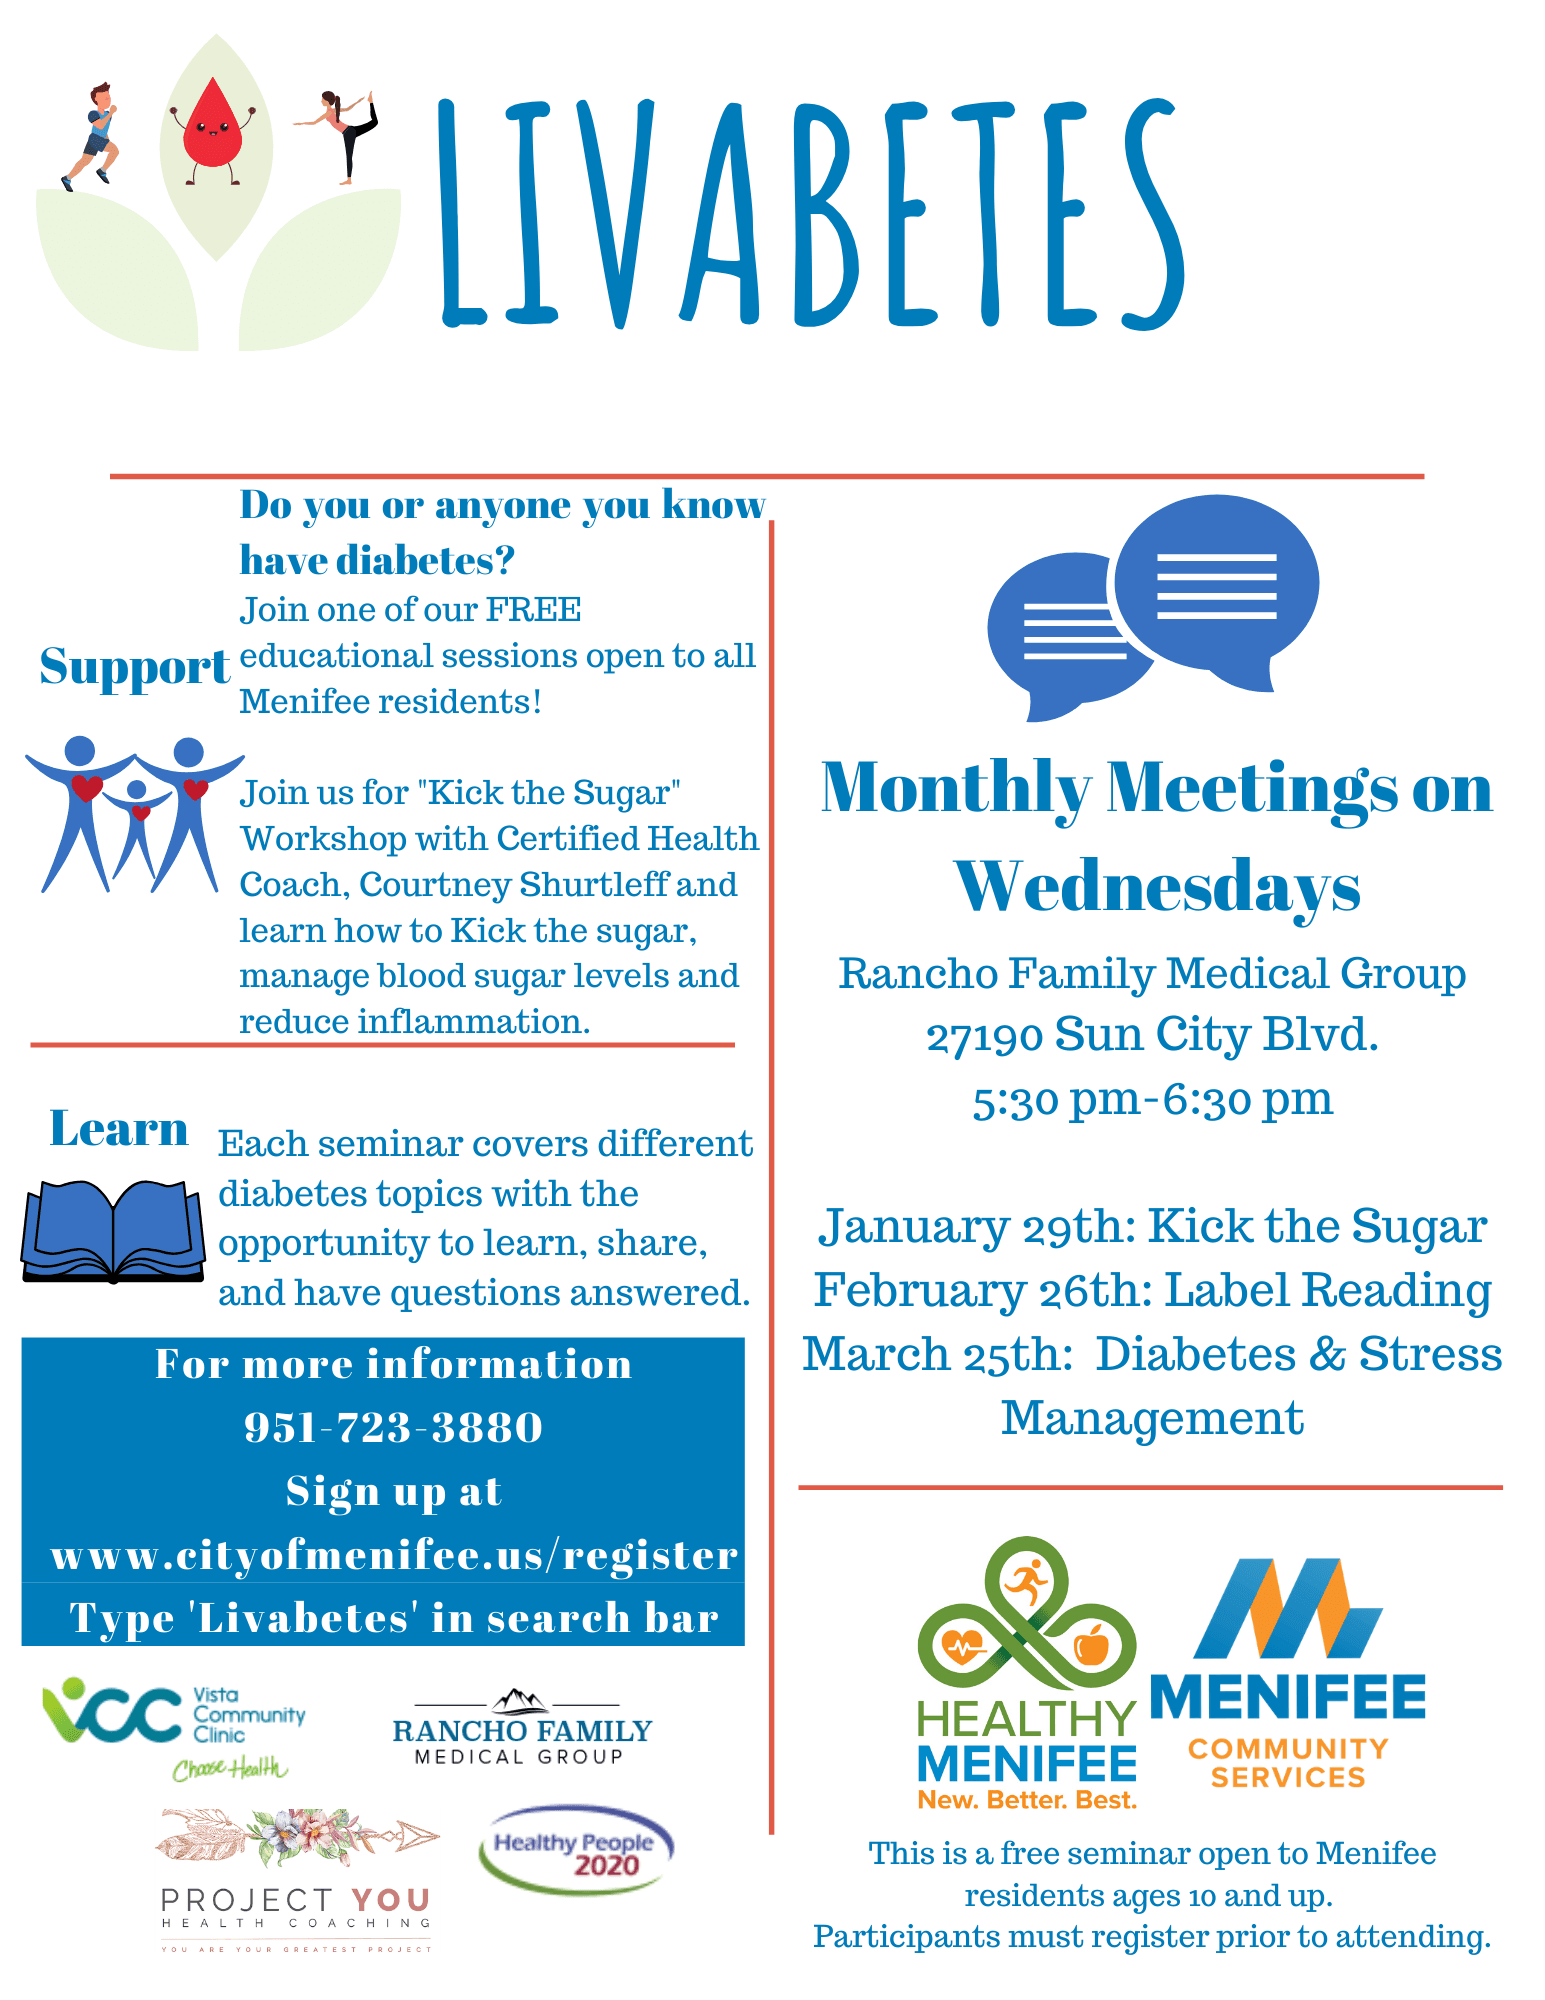 Livabetes Flyer : Free Educational Seminar on Diabetes open to Menifee Residents. Registration req.